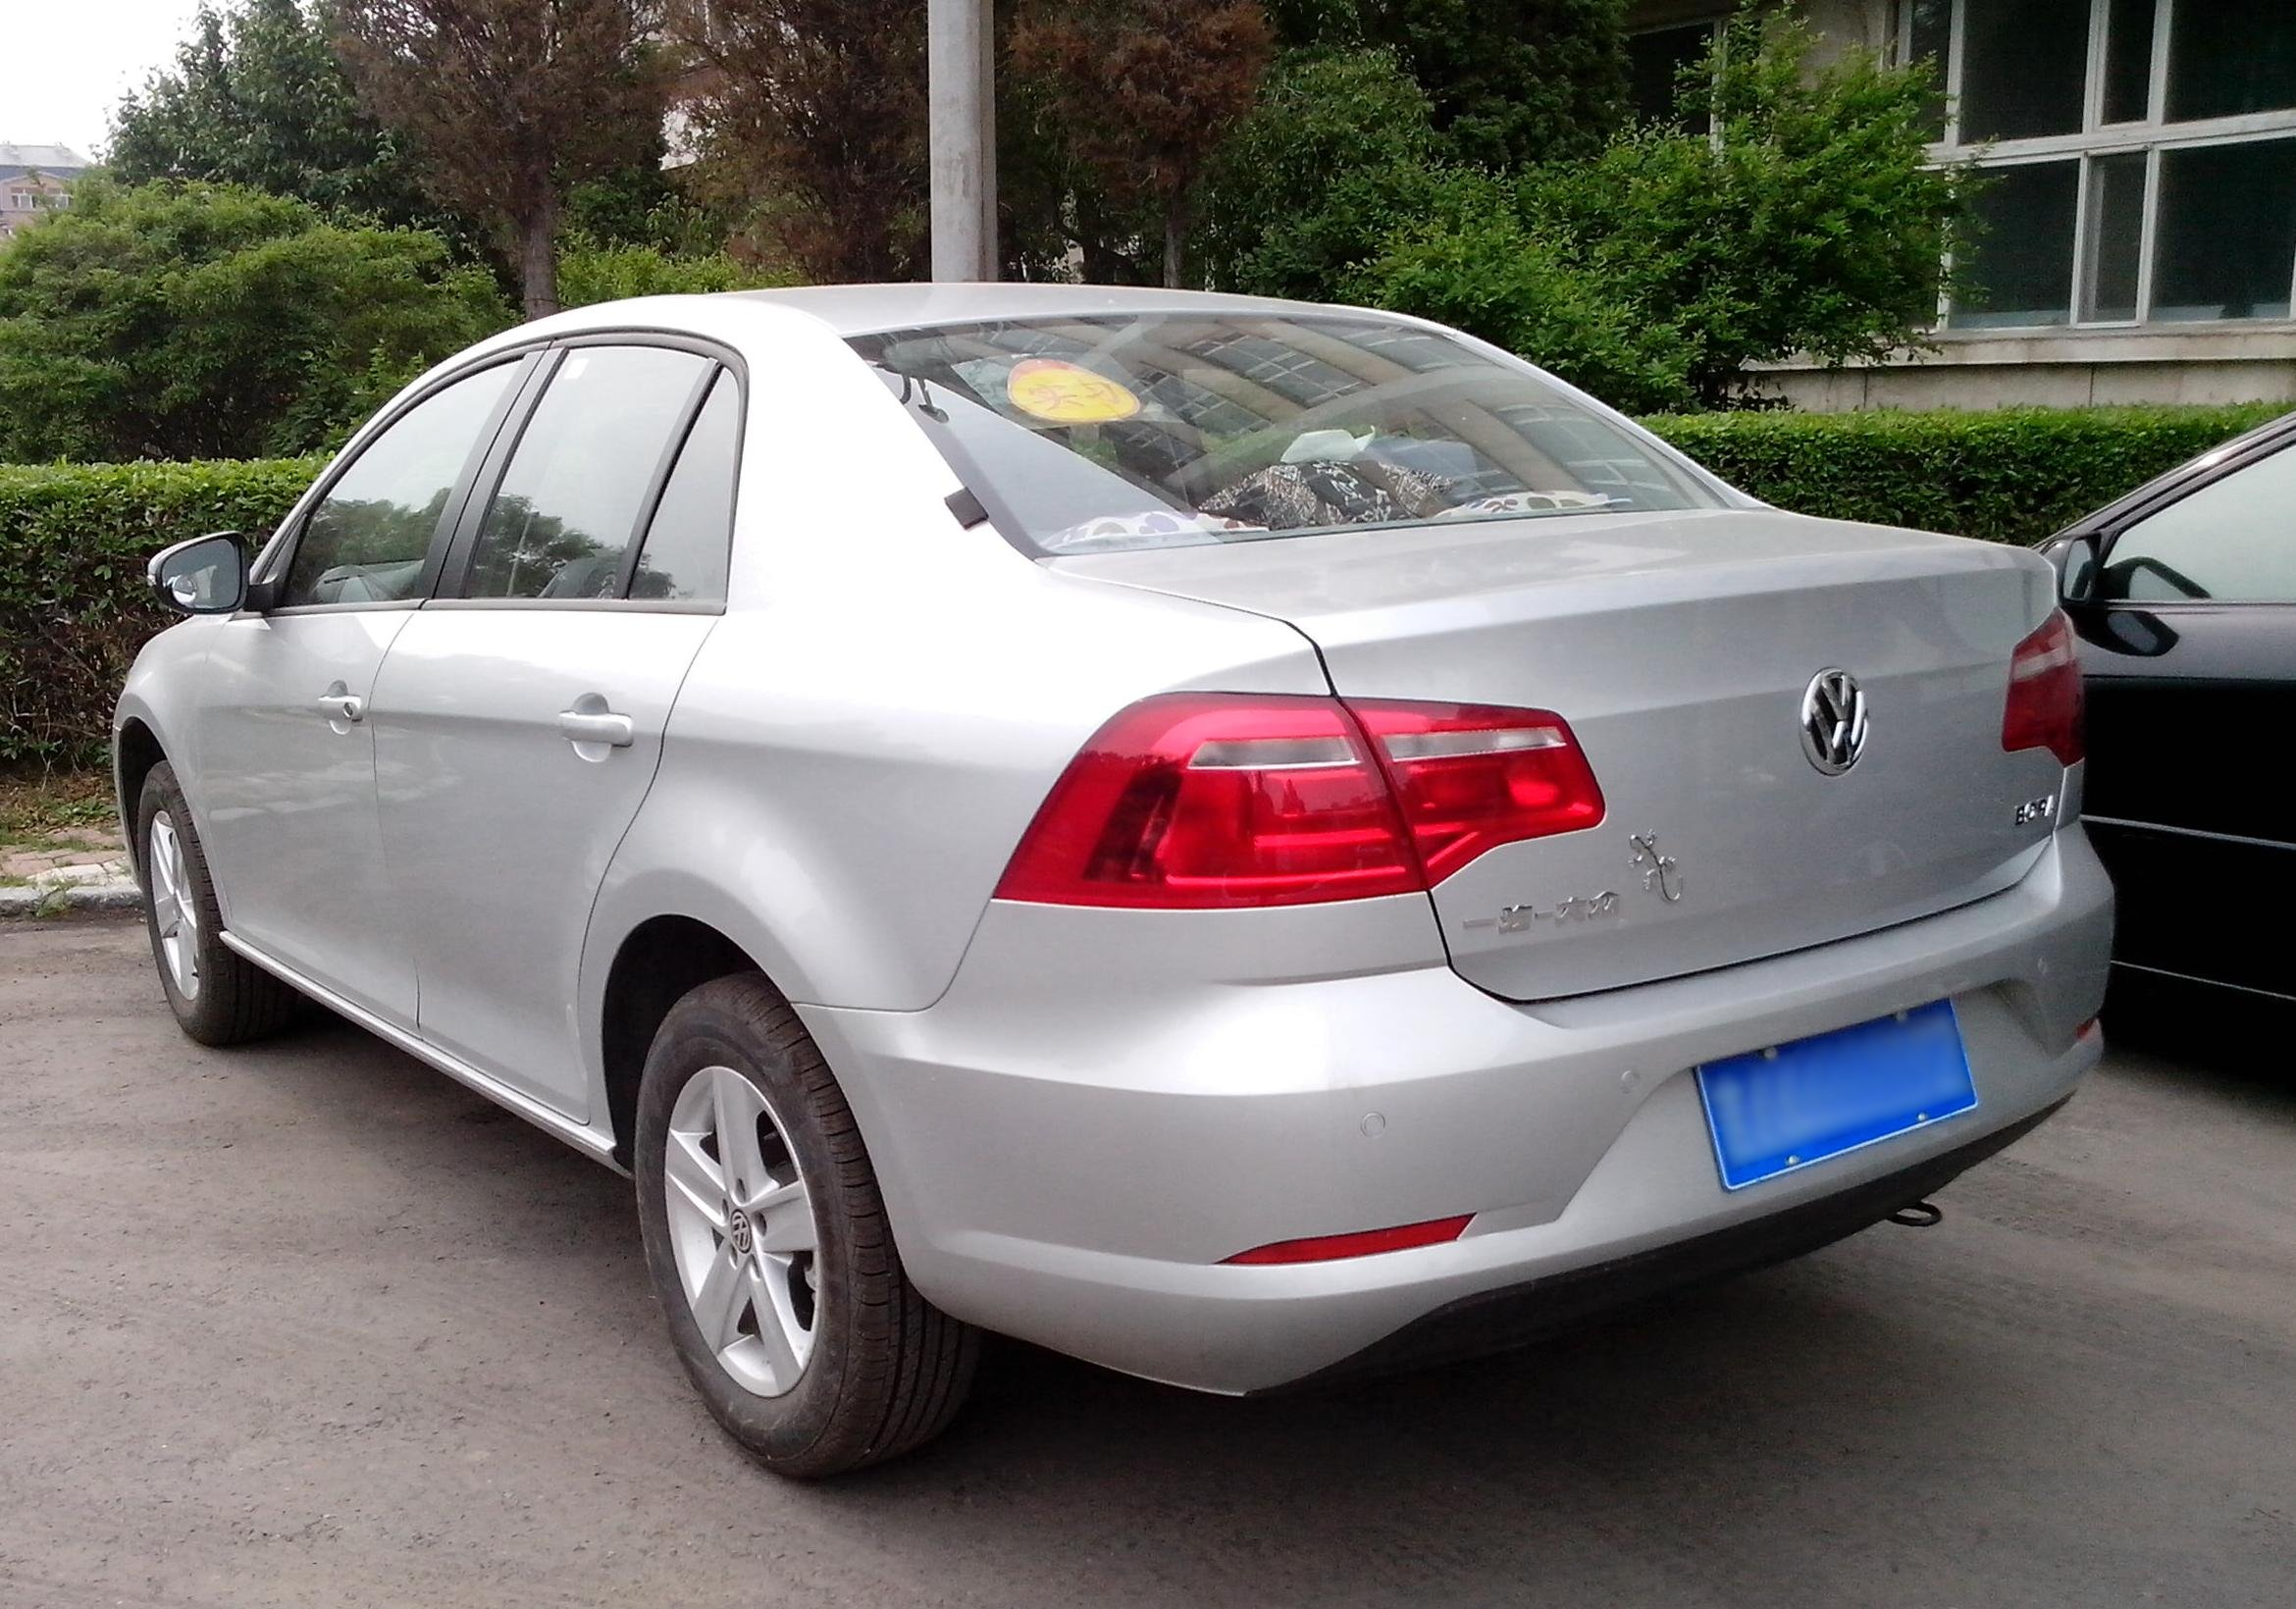 File:FAW-VW Bora 2013 (Chinese Market), rear quarter.jpg - Wikimedia Commons